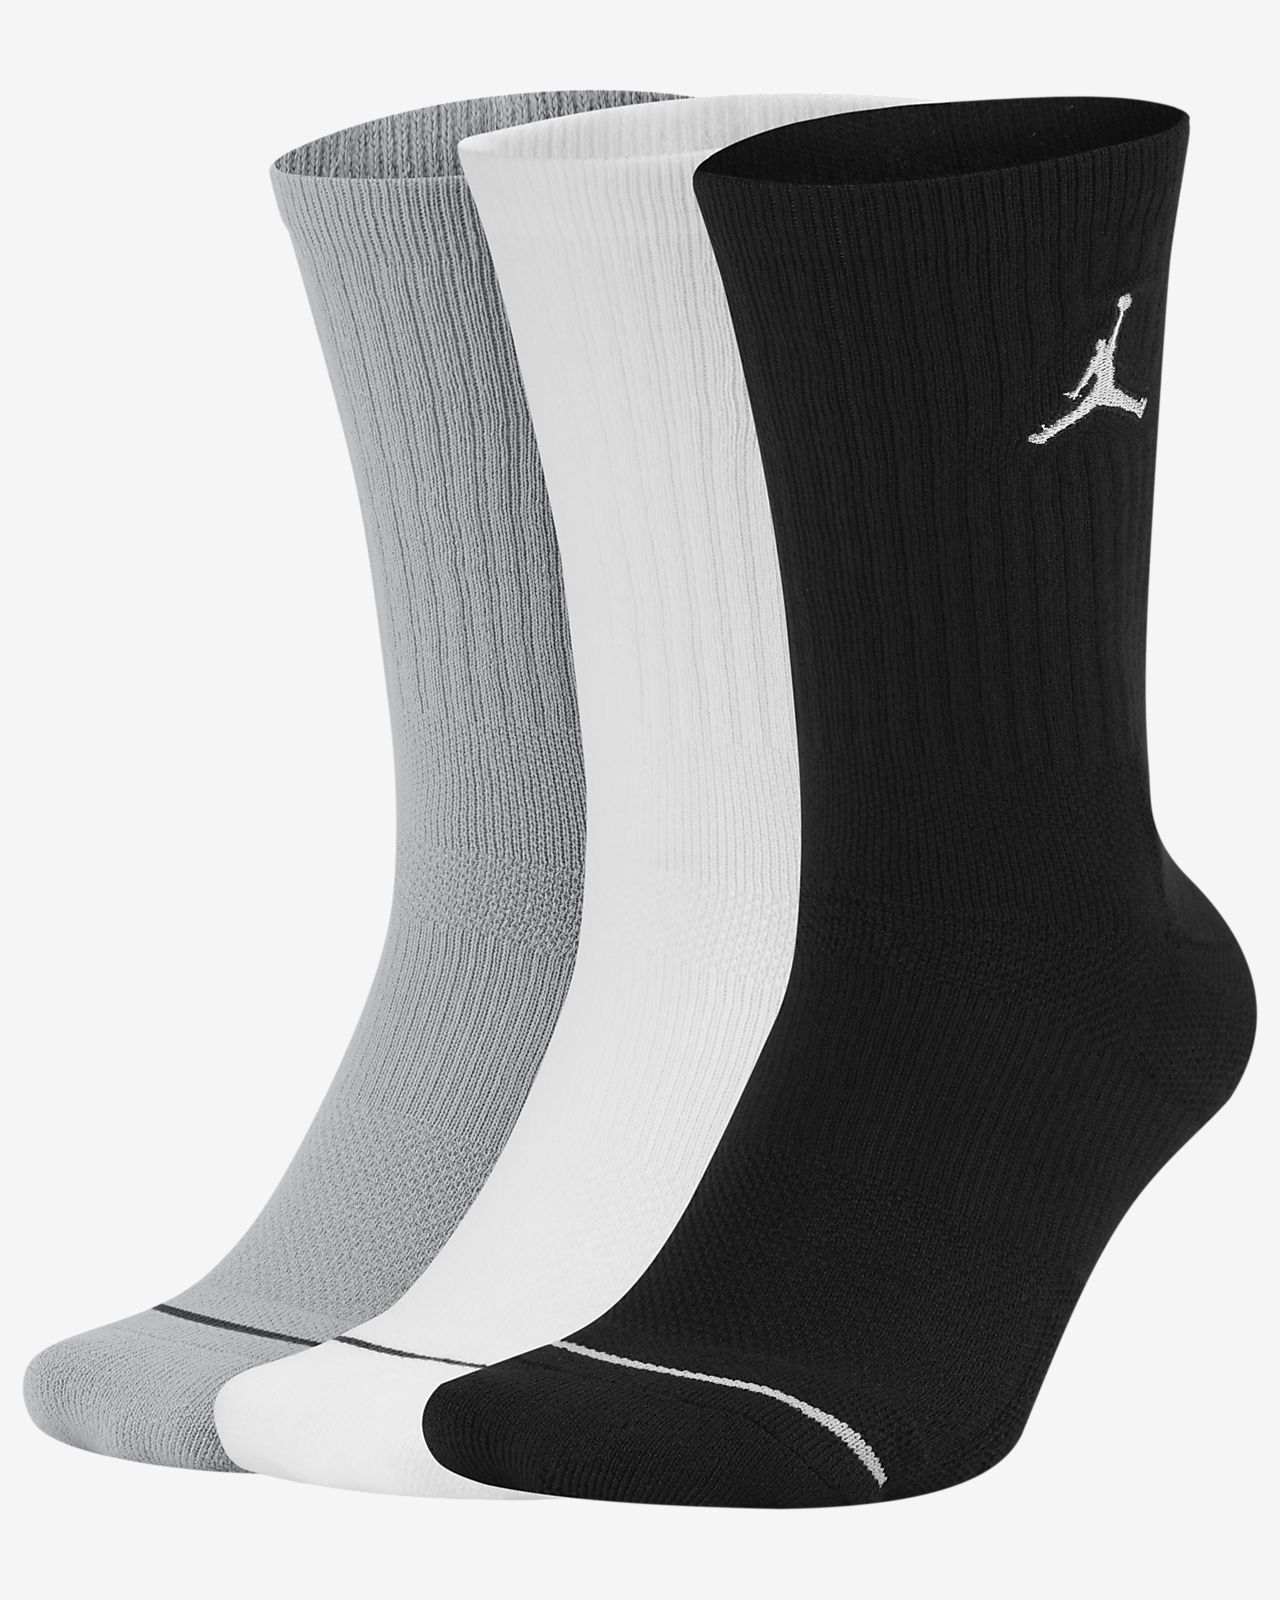 Nike Jordan Jumpman Dri-Fit Crew Socks 3 Pack Multi SX5545-011